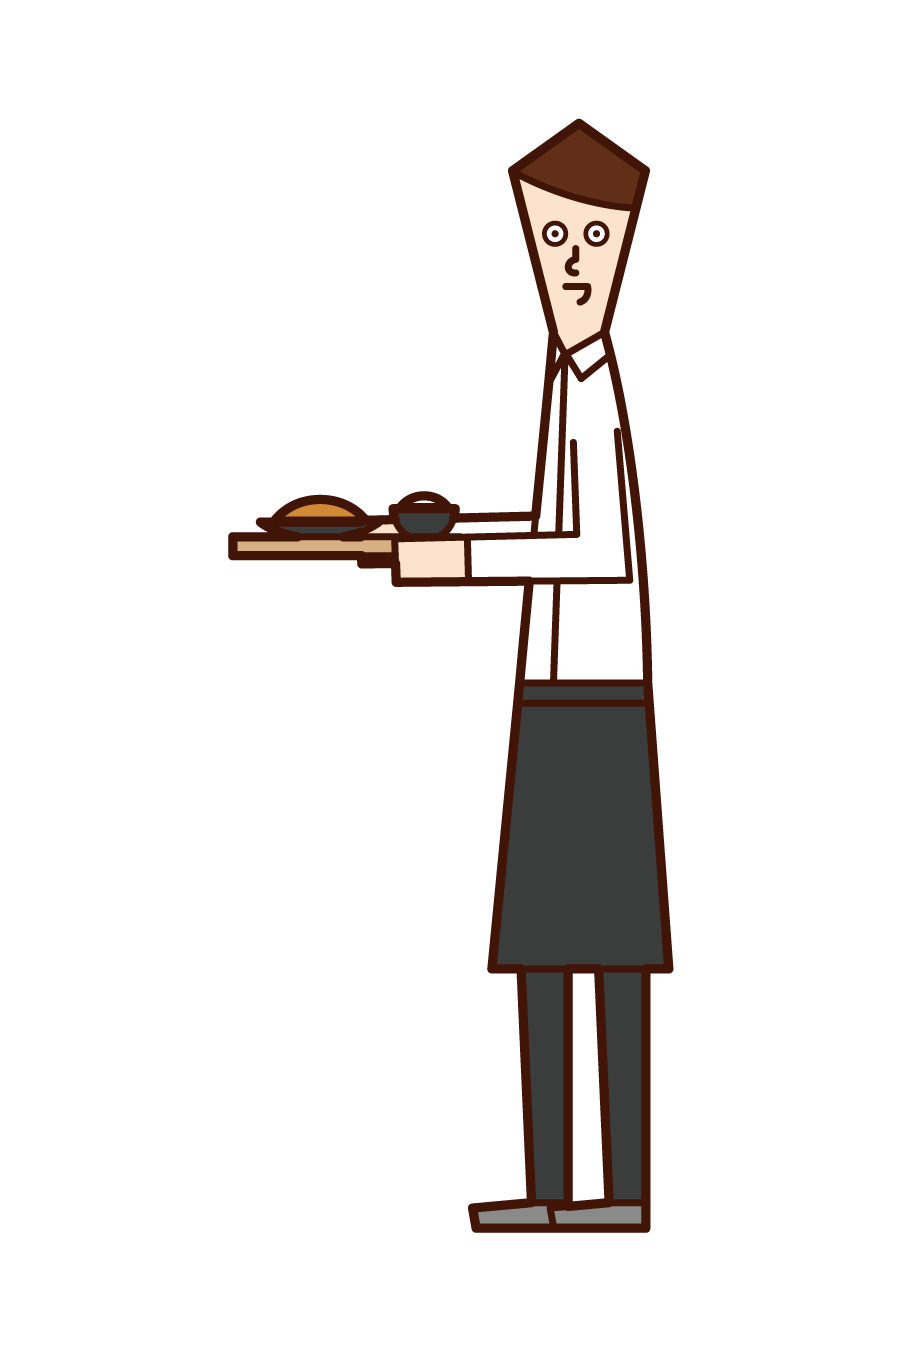 Illustration of a clerk (man) at a restaurant or café